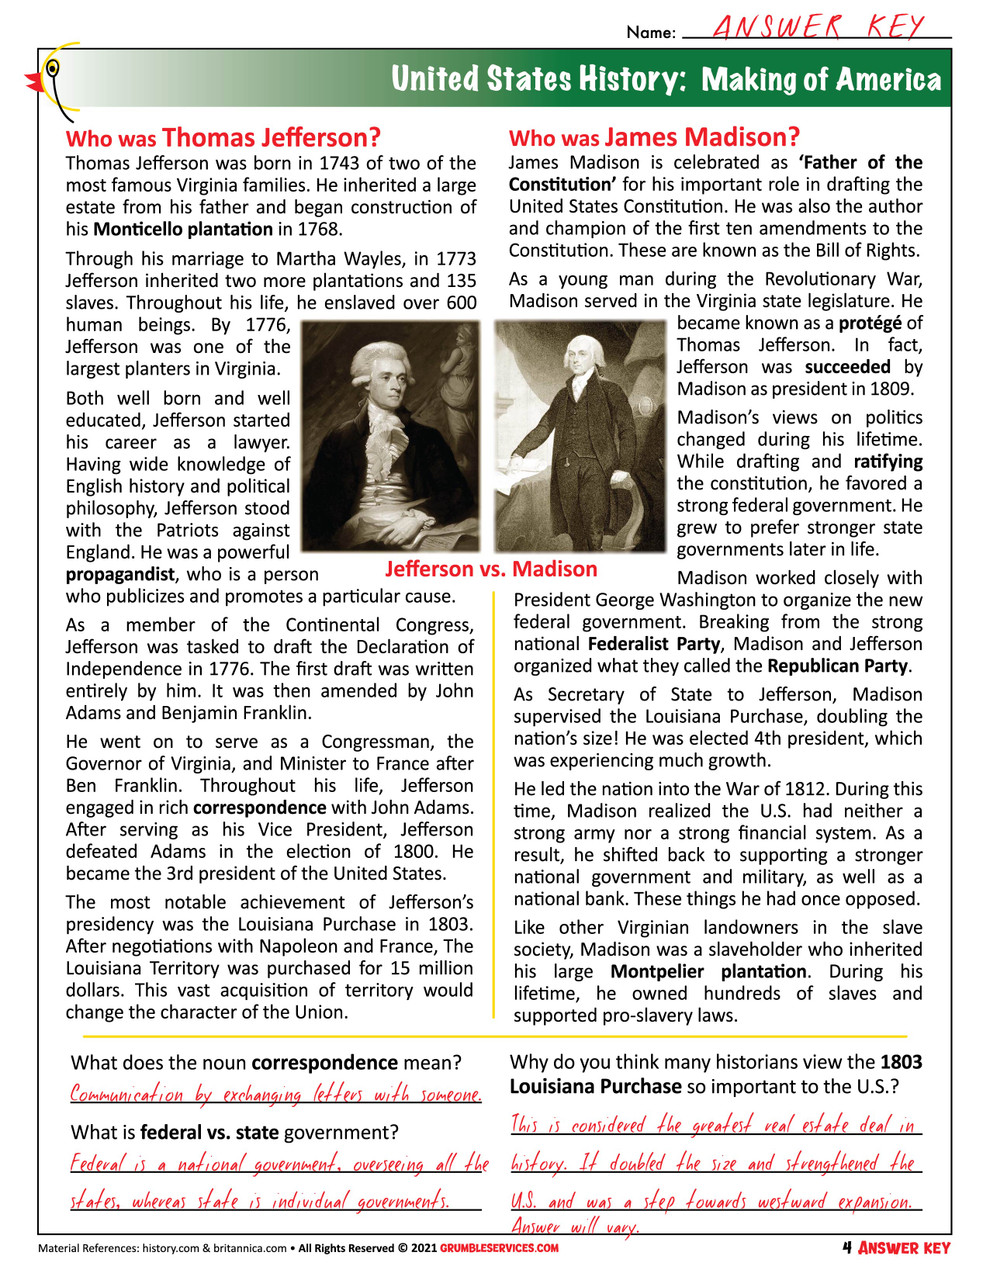 Founding Fathers The United States of America - ROOKIE Elementary Montessori History help (4 pages + key)